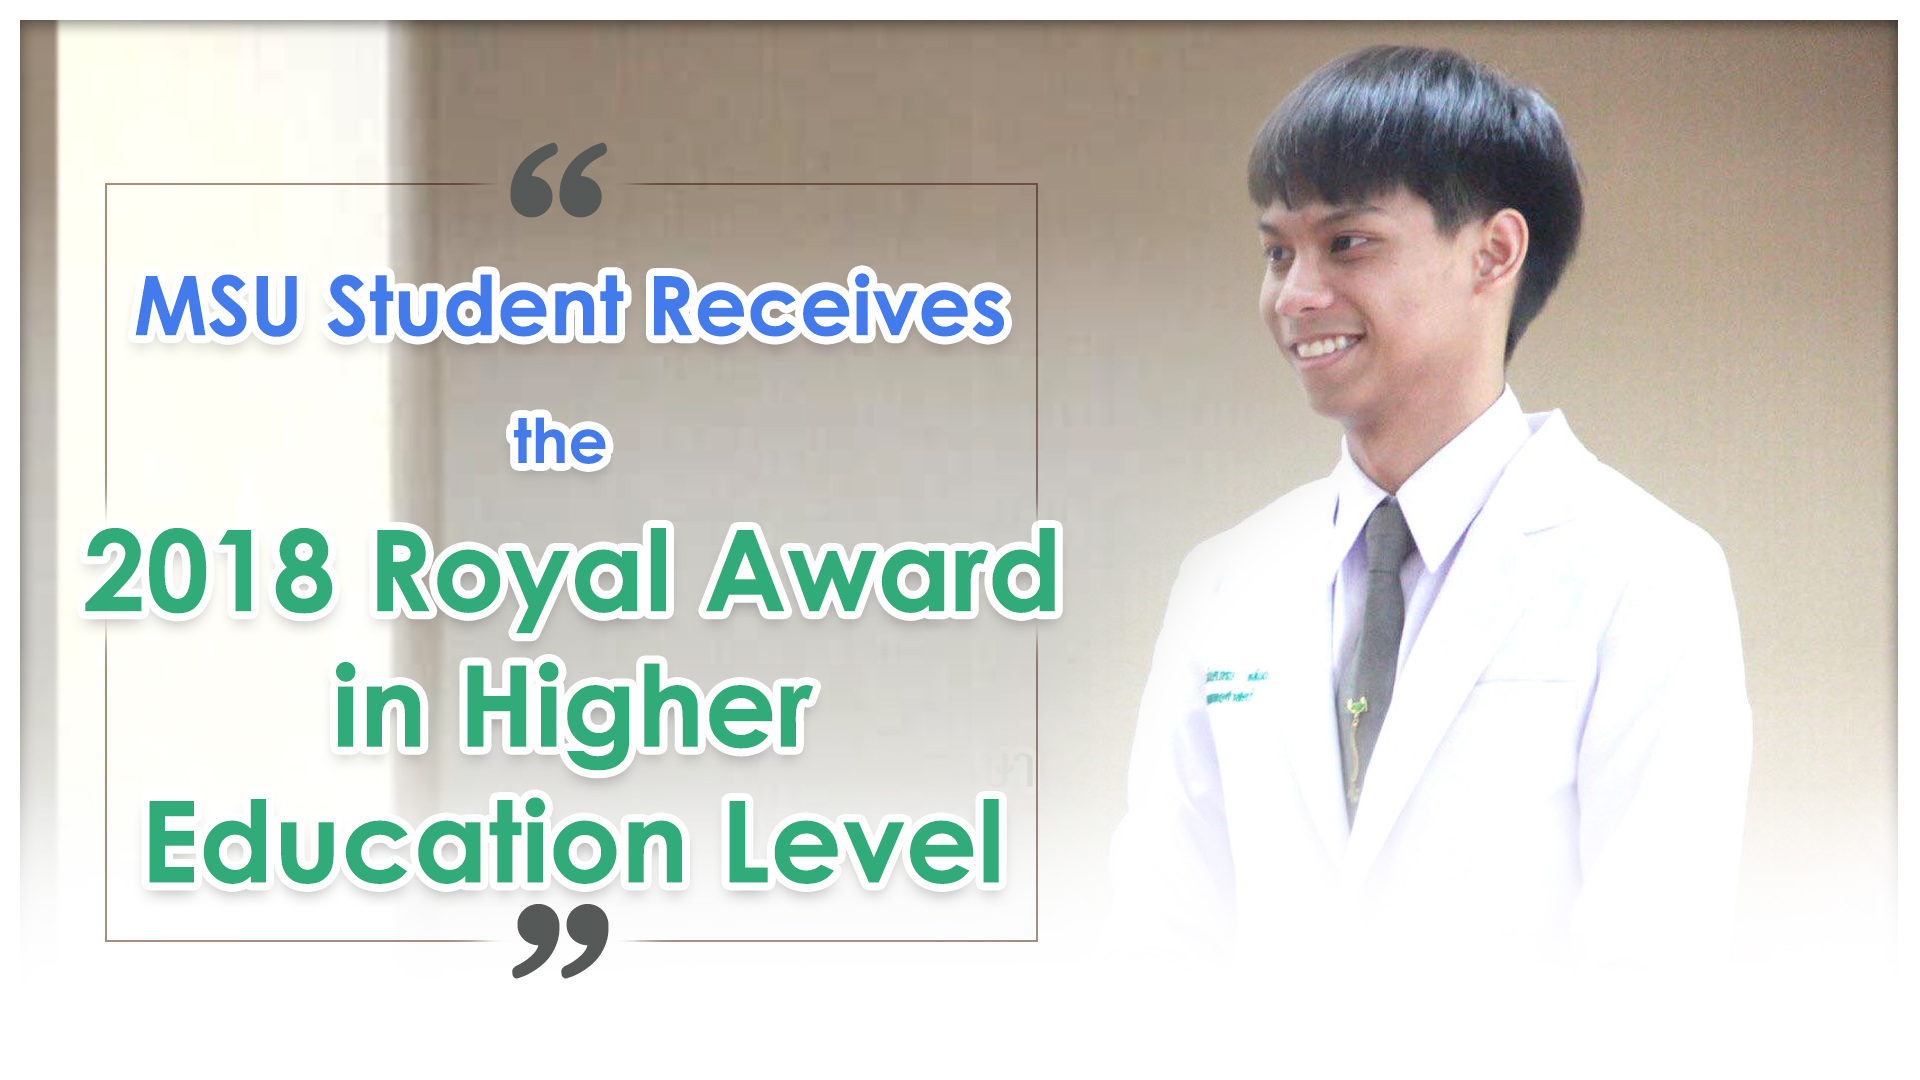 MSU Student Receives the 2018 Royal Award in Higher Education Level